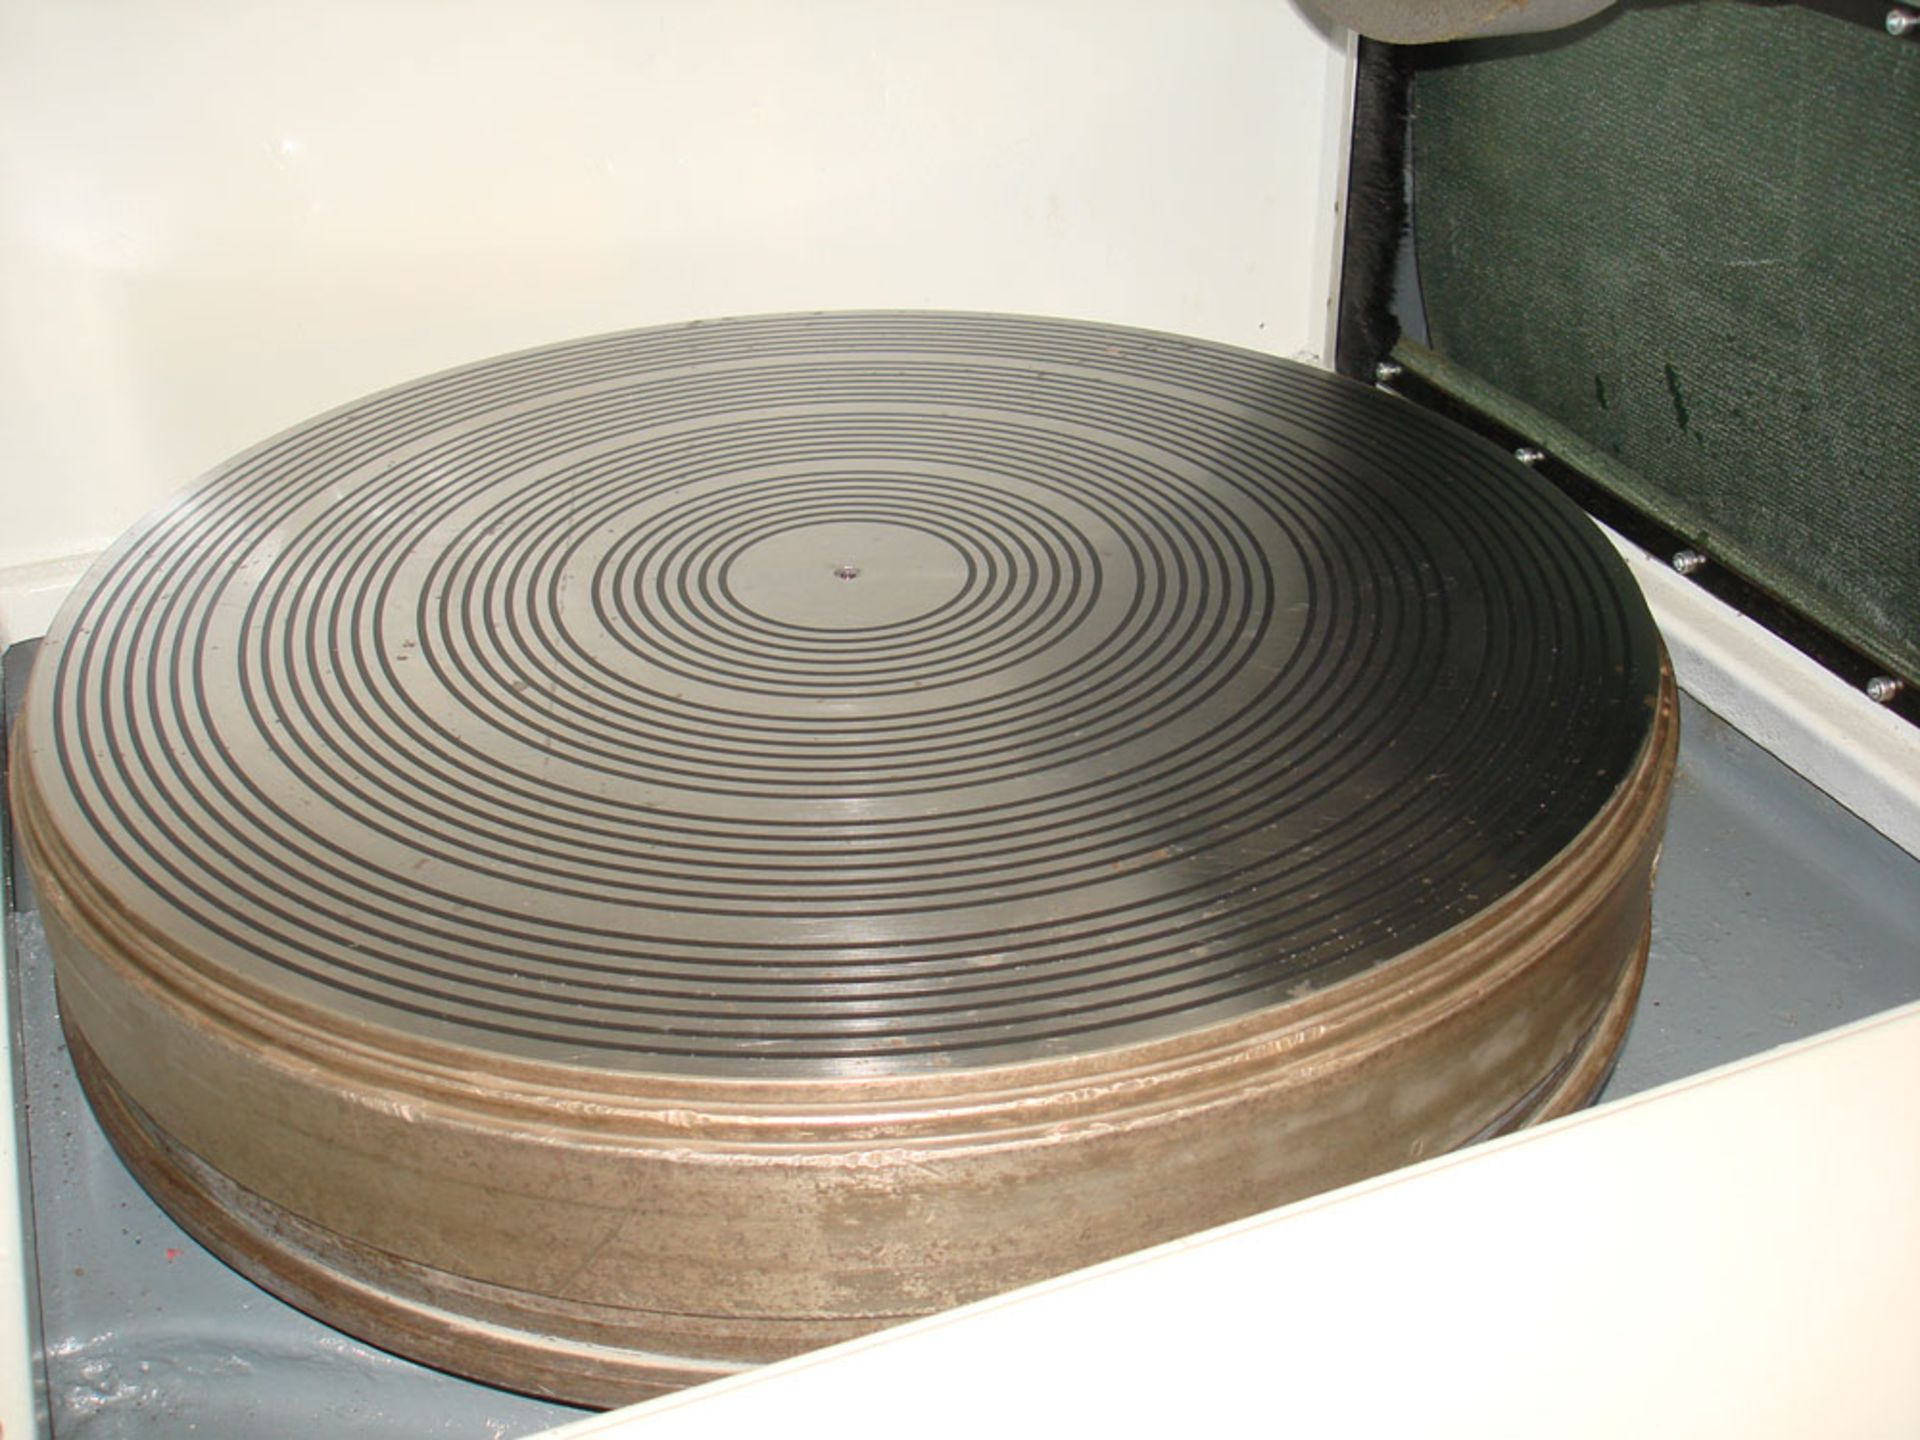 Abwood RG1 Rotary Table Surface Grinder. Magnet Diameter 600mm. - Image 2 of 7